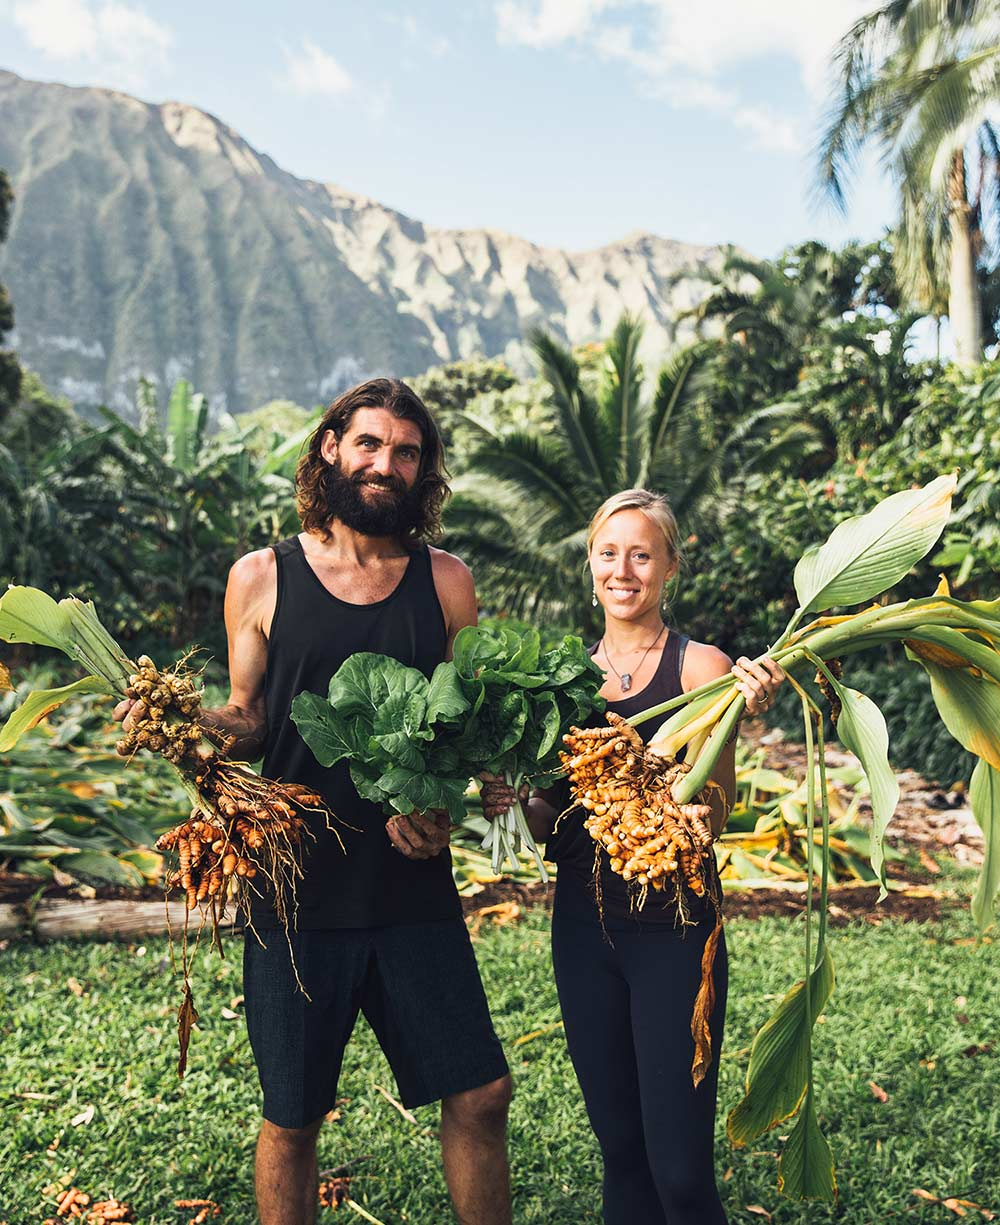 Meet Paul and Kelly at Yogarden Hawaii in Waimanalo with their freshly harvested organic turmeric root